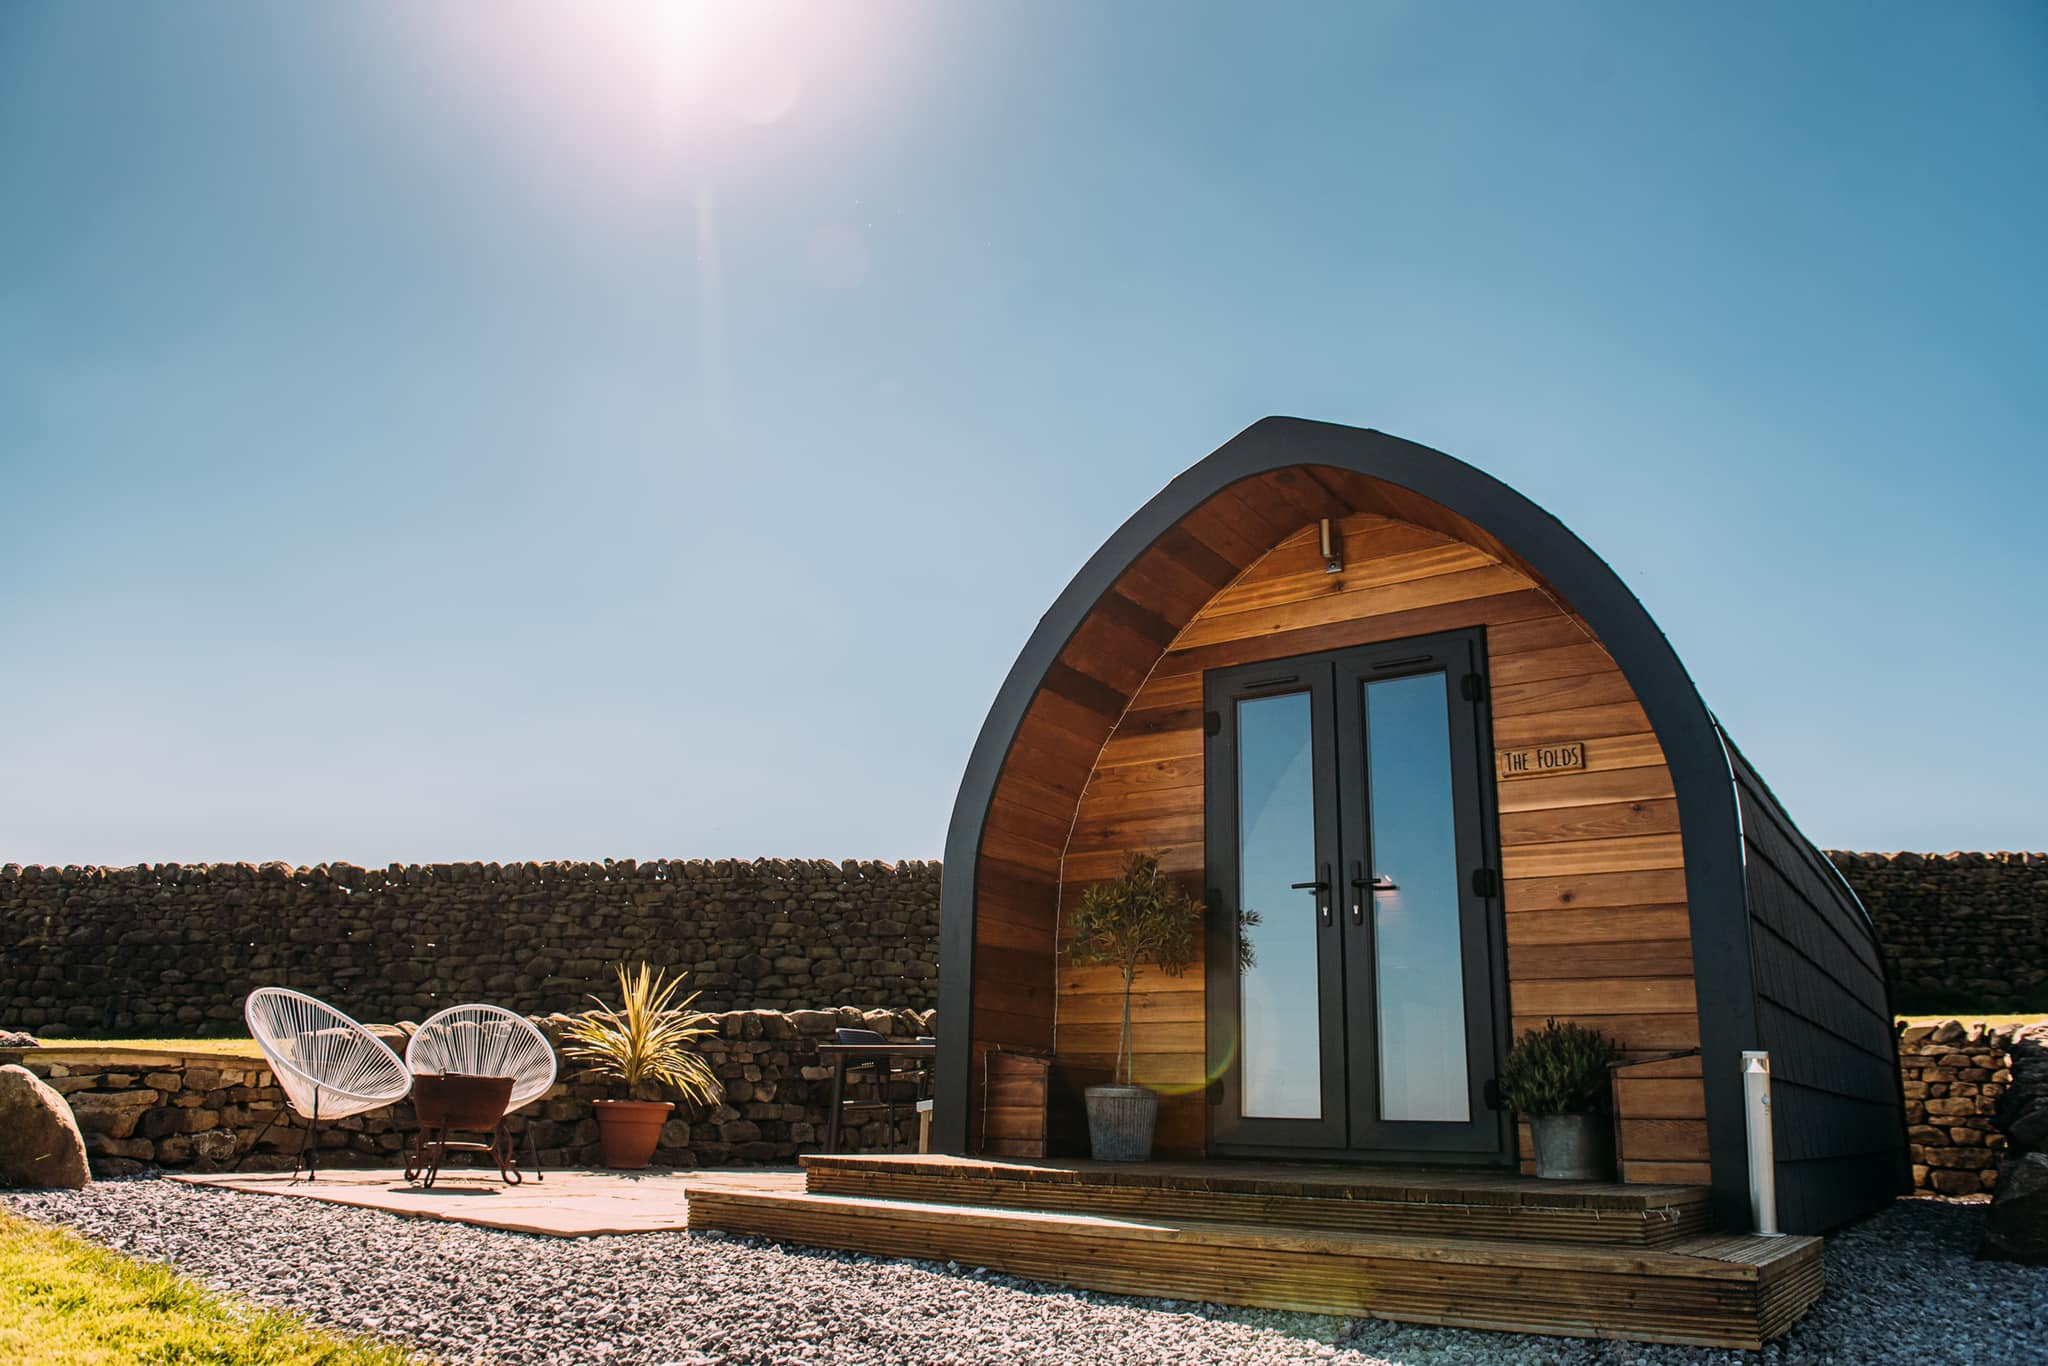 The Weekend Warrior's Guide to Glamping Near Ingleborough